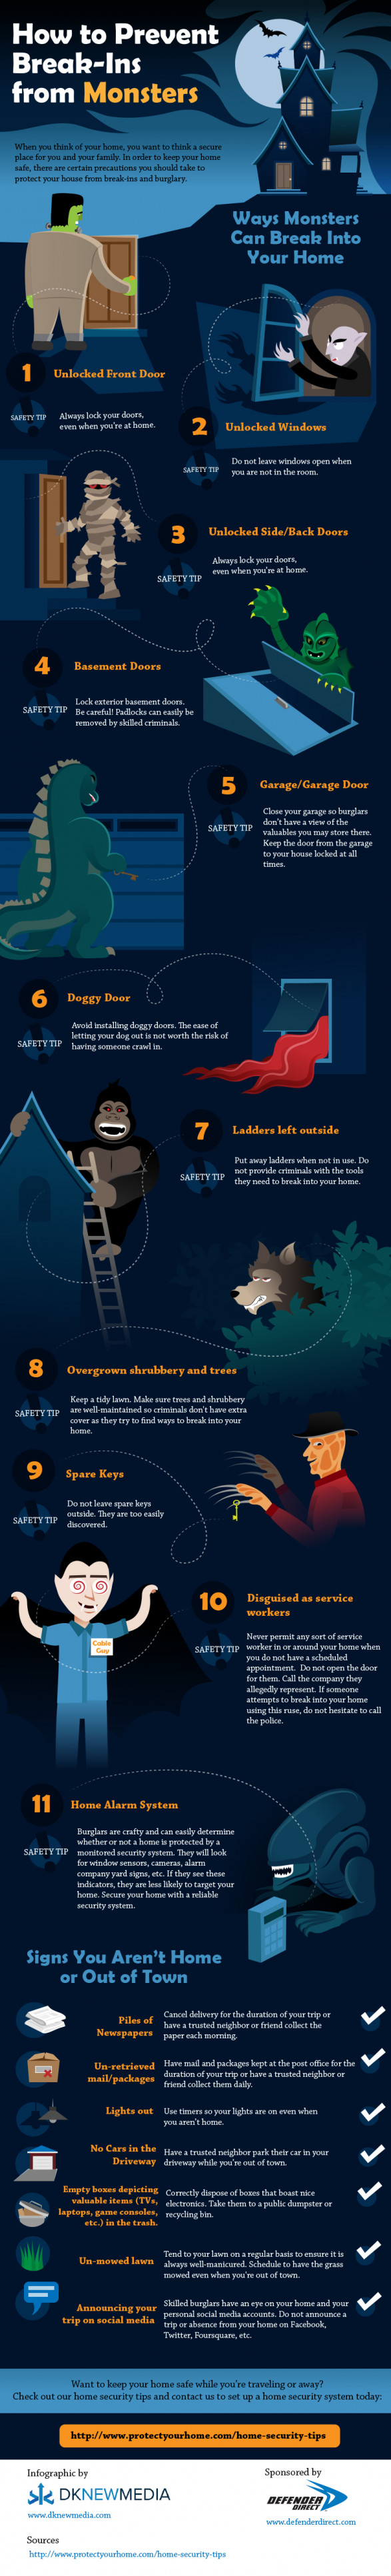 How to Prevent Break-Ins from Monsters